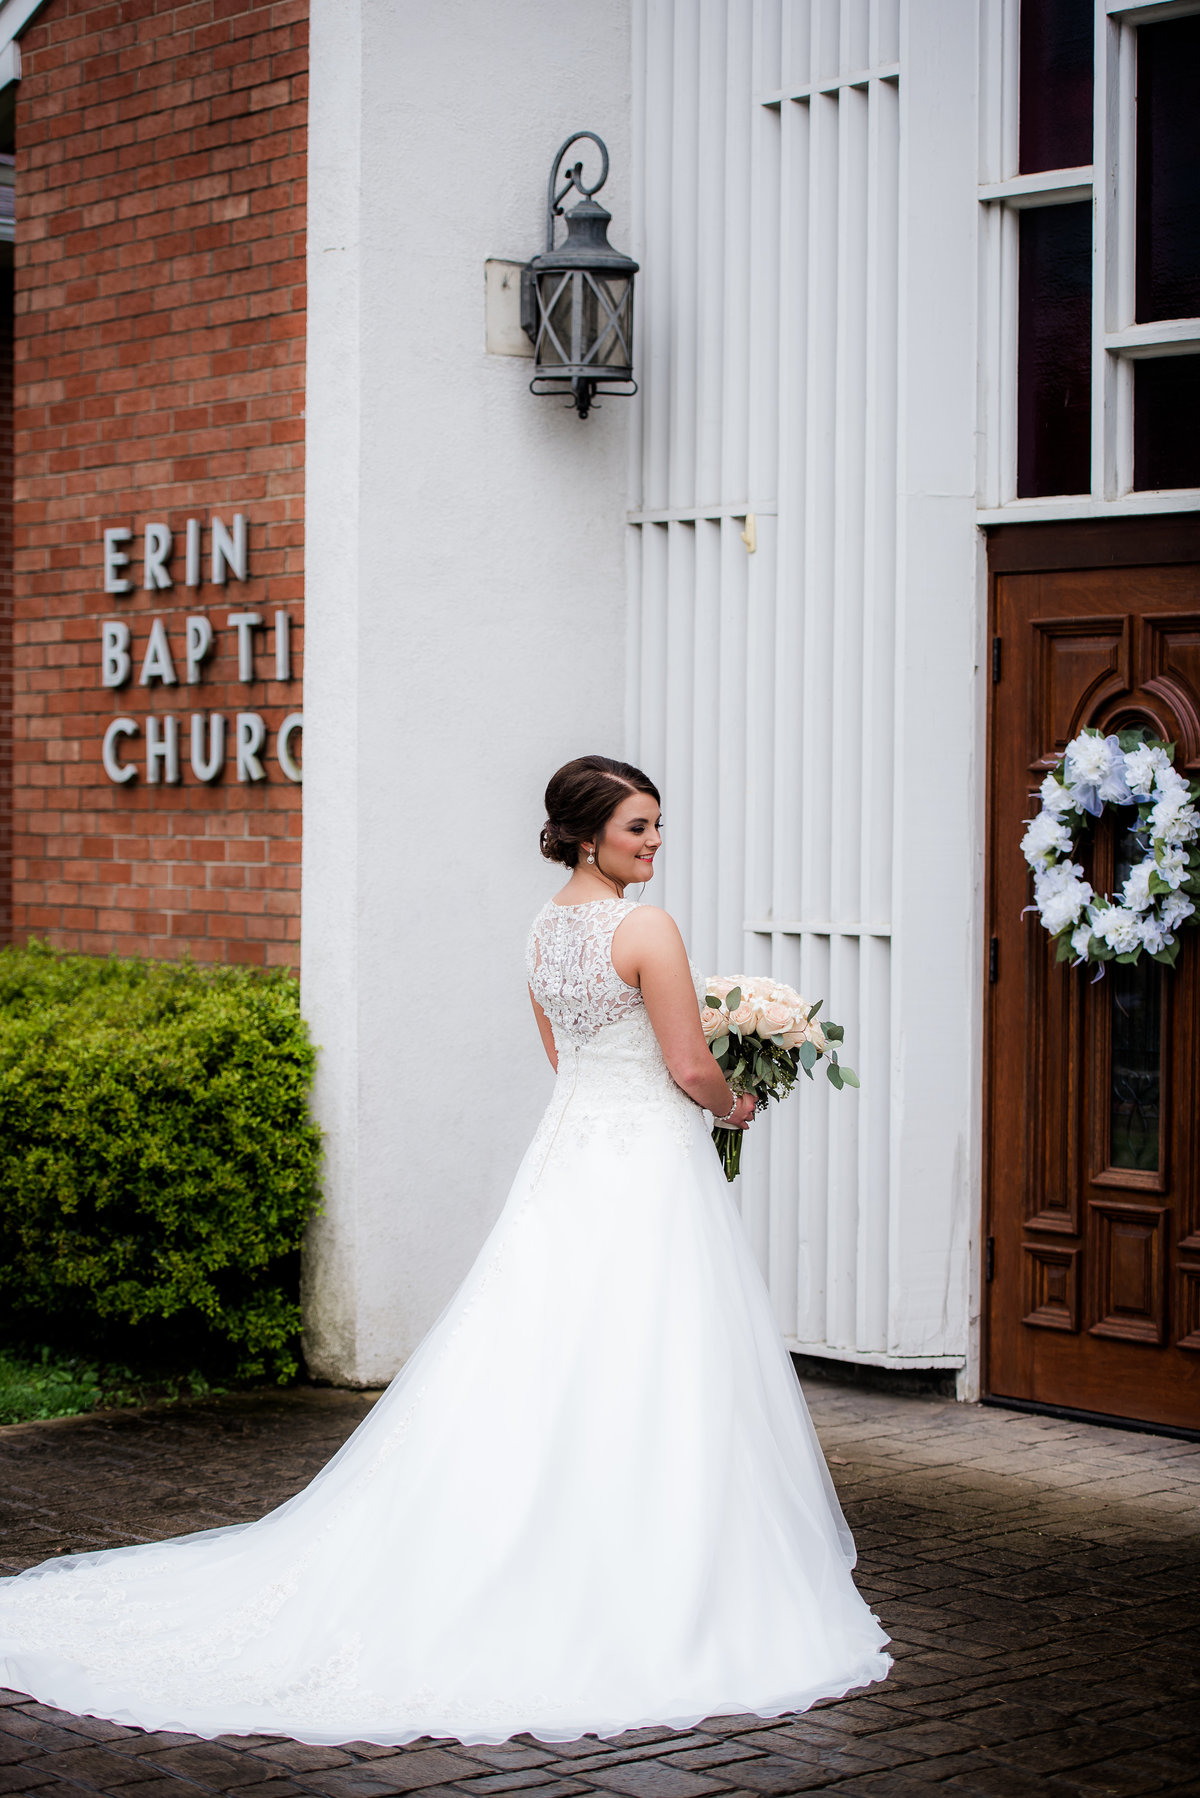 Church Wedding - Church Weddings - Dickson TN Weddings - Couples Who Love Jesus - Family Church - Nashville Wedding Photographer - Nashville Wedding Photographers086